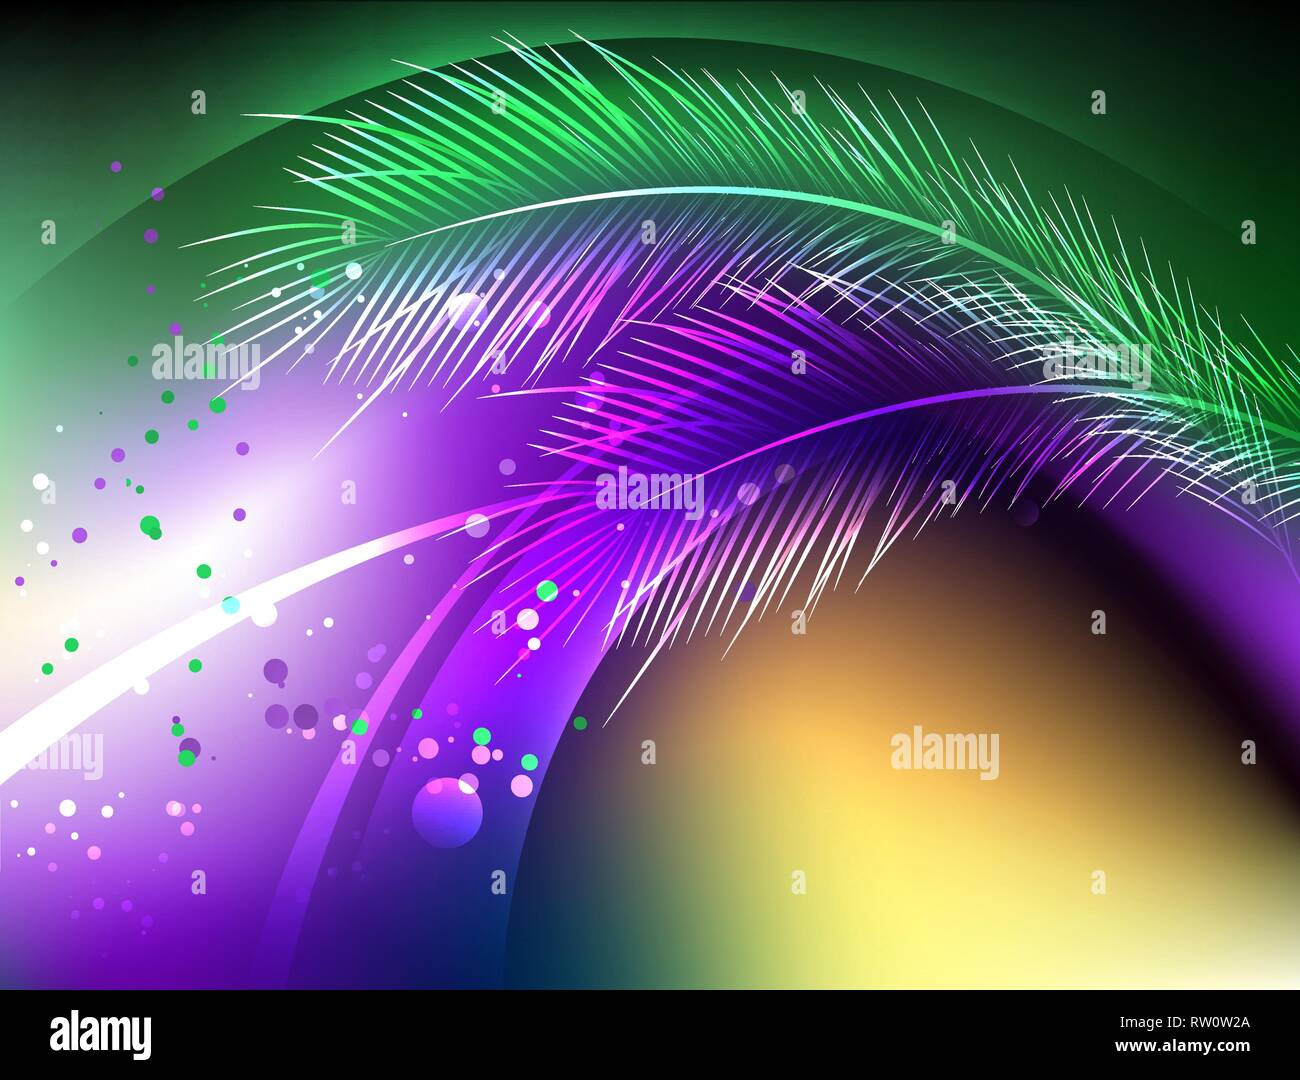 Abstract, purple, green, yellow, iridescent background with fluffy feather and bright confetti. Holiday Mardi Gras. - Stock Vector